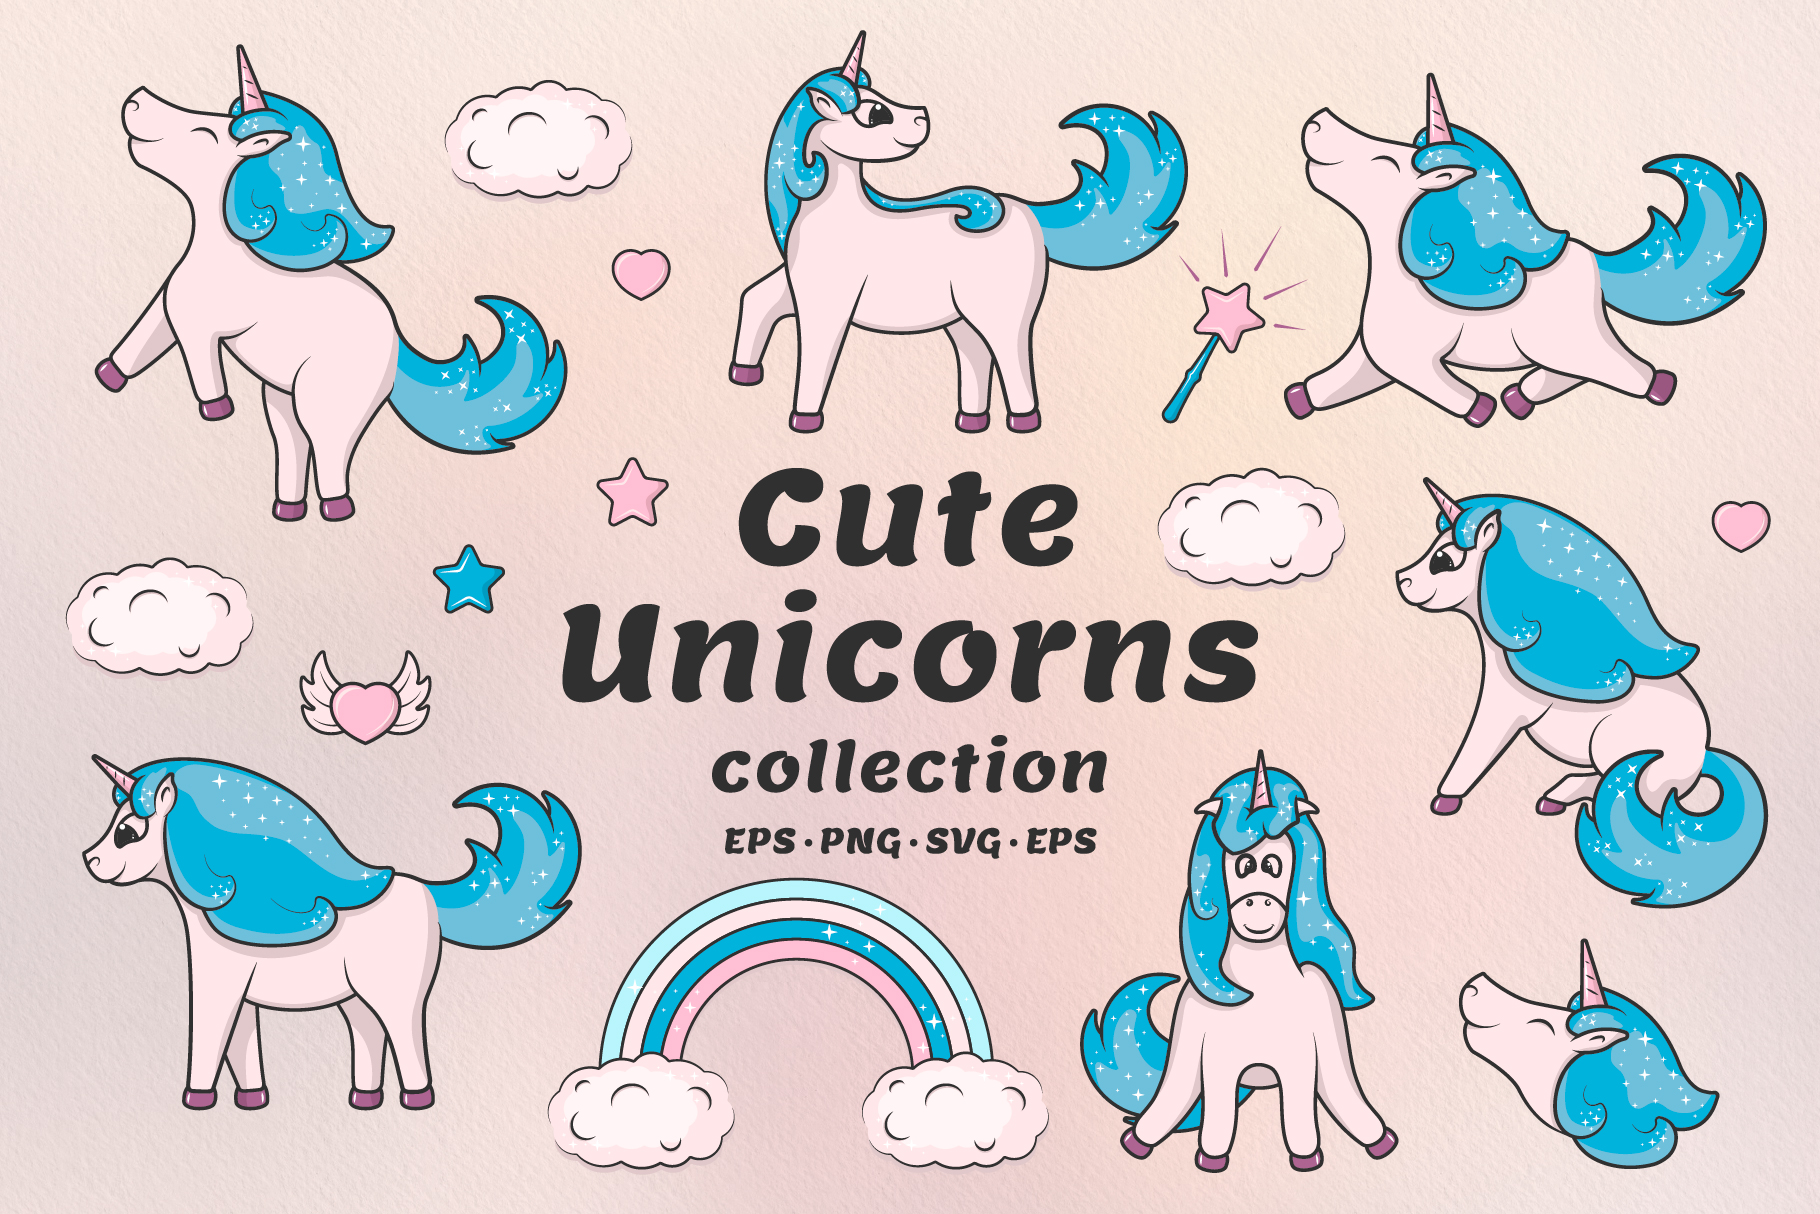 Hand Drawn Cute Unicorns Collection Graphic By Kirill S Workshop